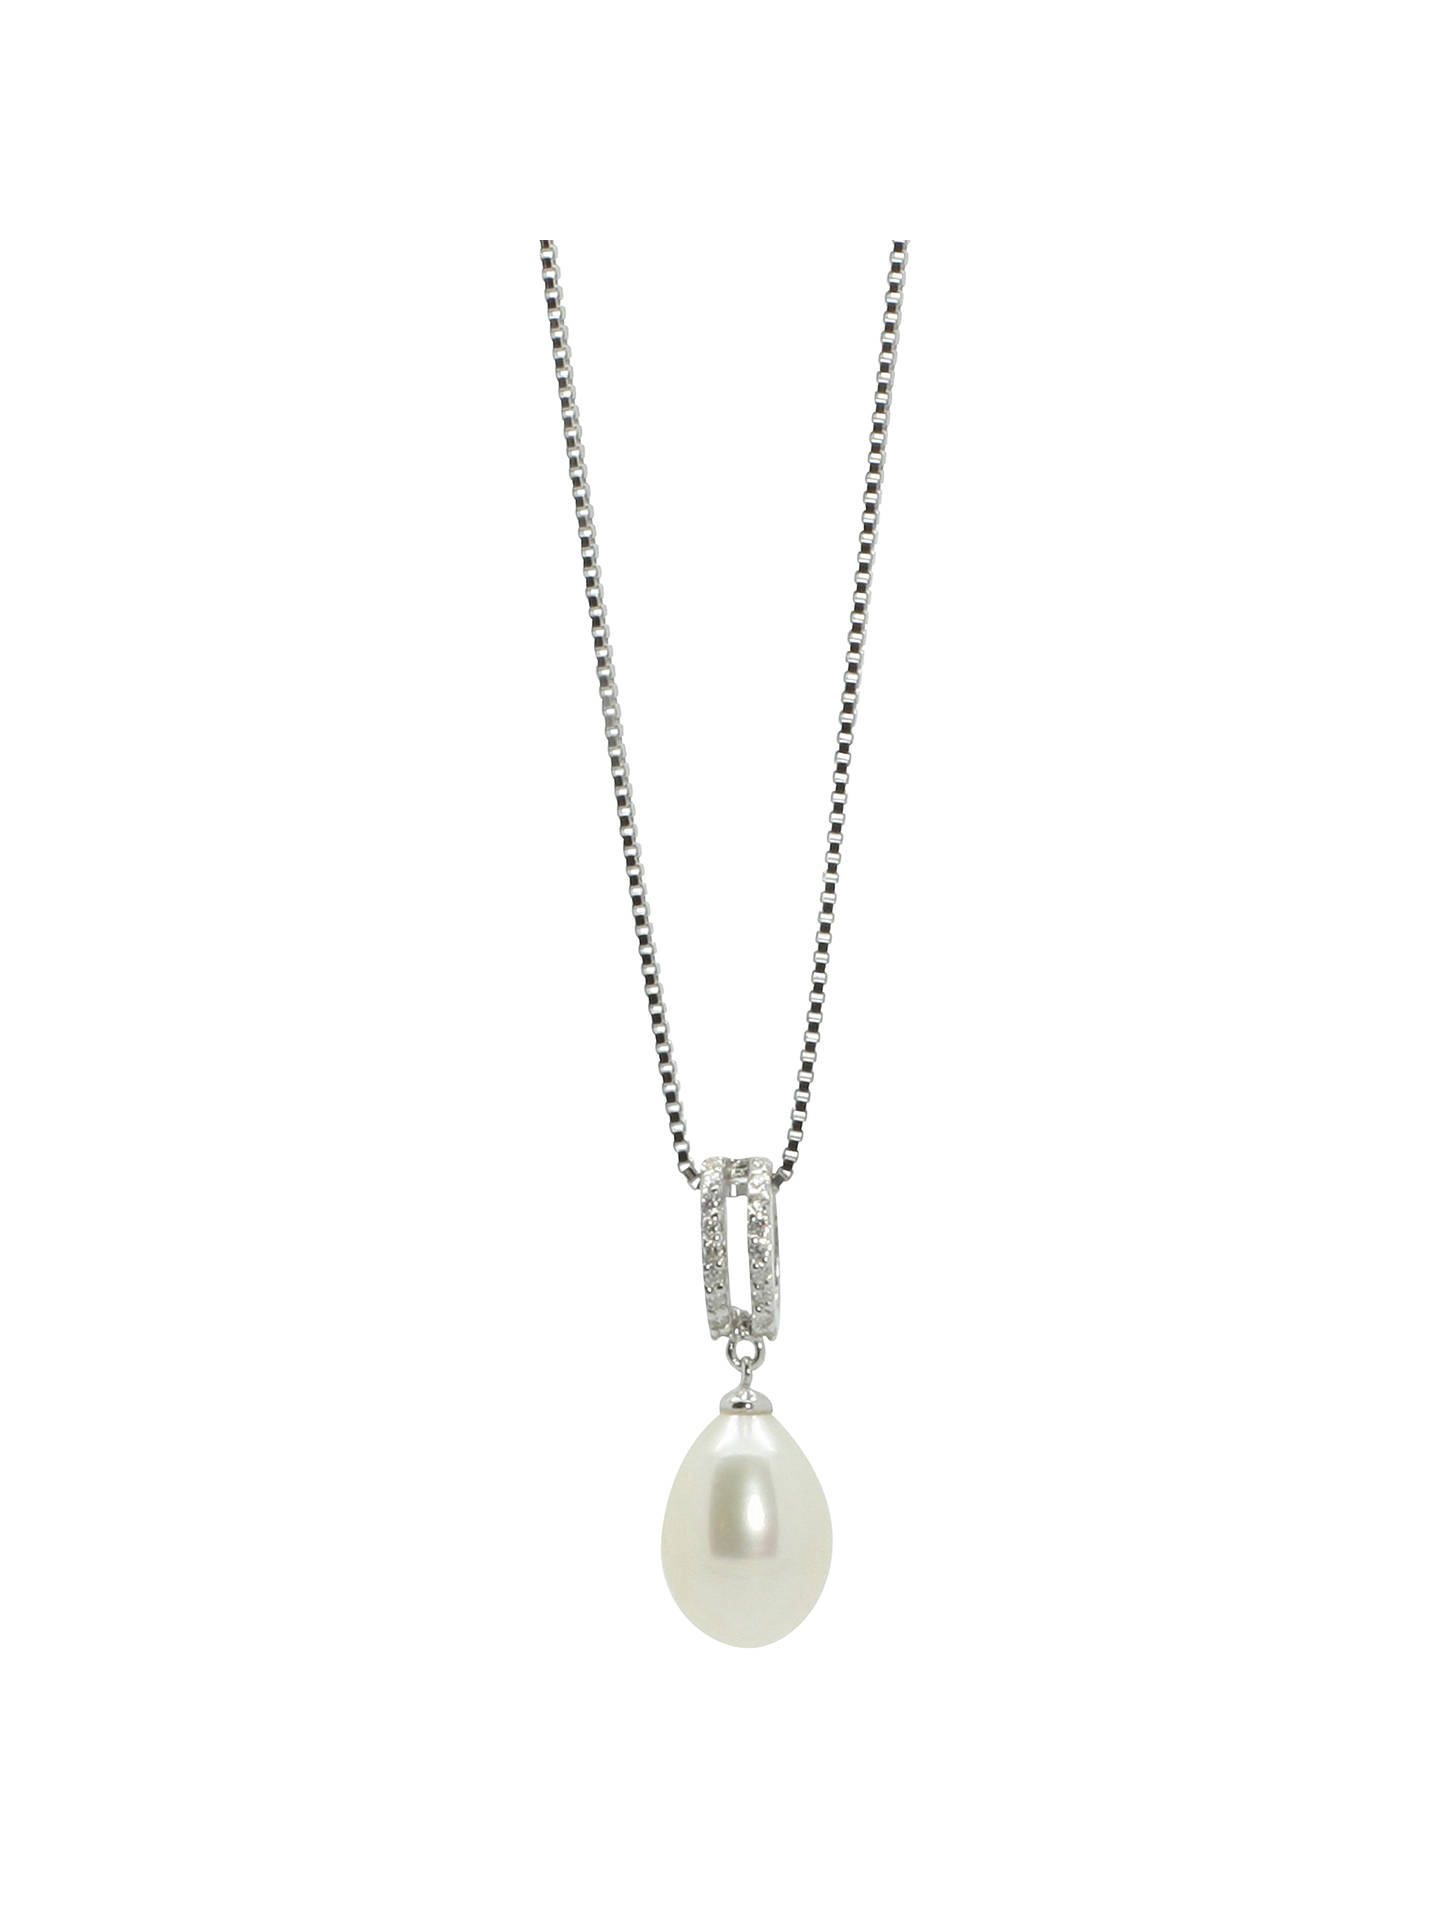 a98da142b6a2 Buy Lido Pearls Double Row Cubic Zirconia Freshwater Pearl Drop Pendant  Necklace, Silver/White